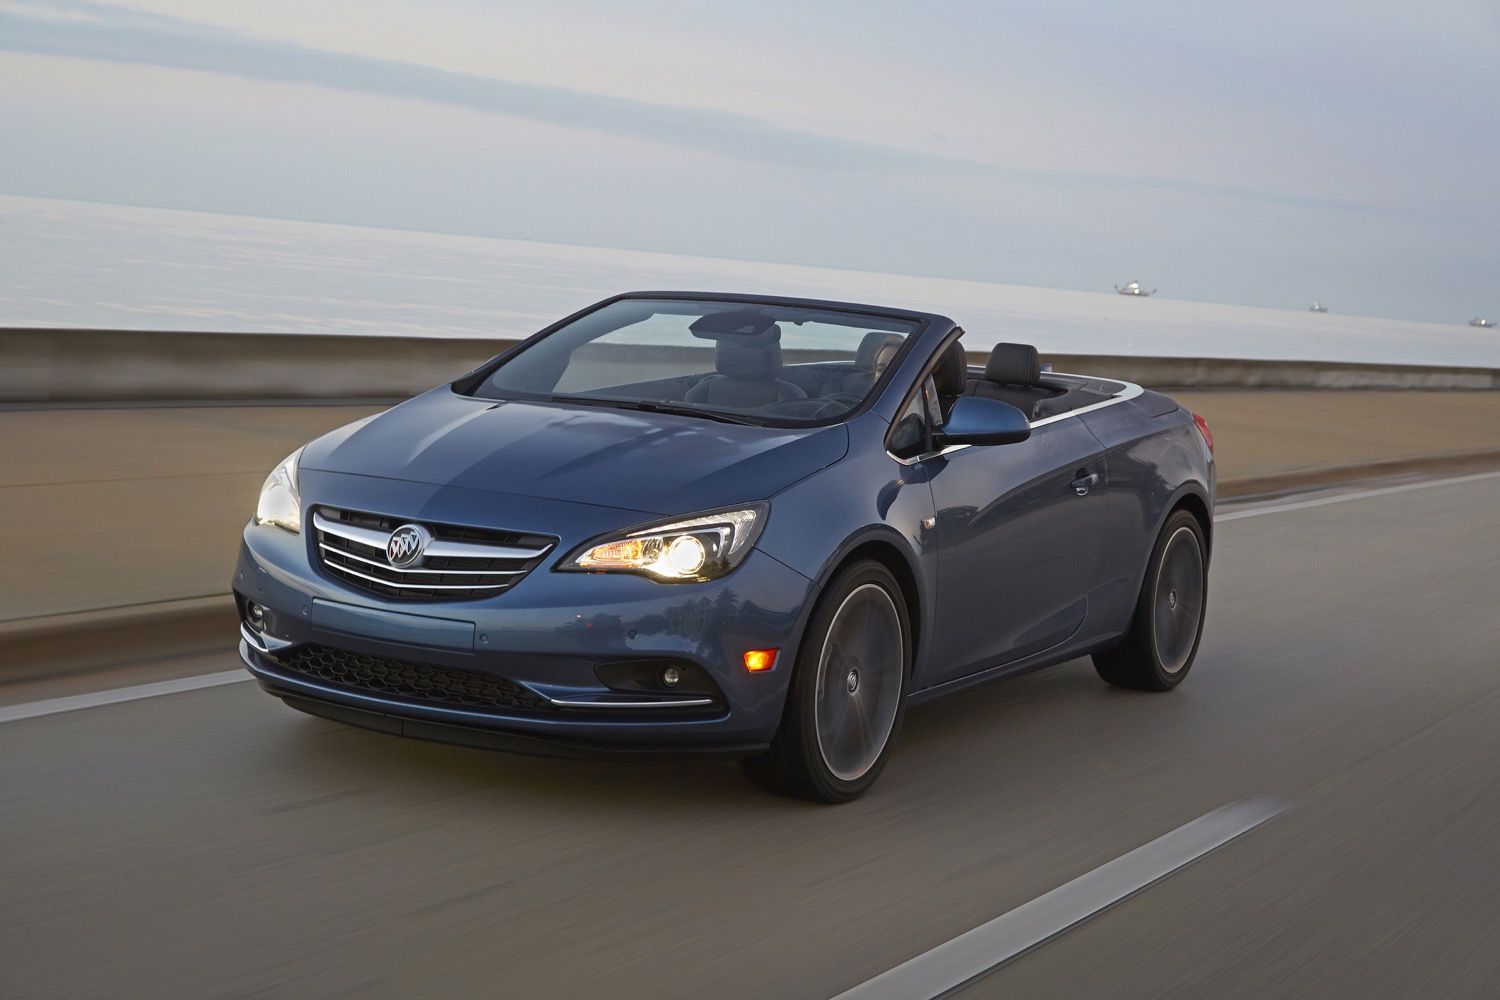 Buick Cascada Officially Discontinued | Gm Authority 2022 Buick Cascada Awd, Build And Price, Engine